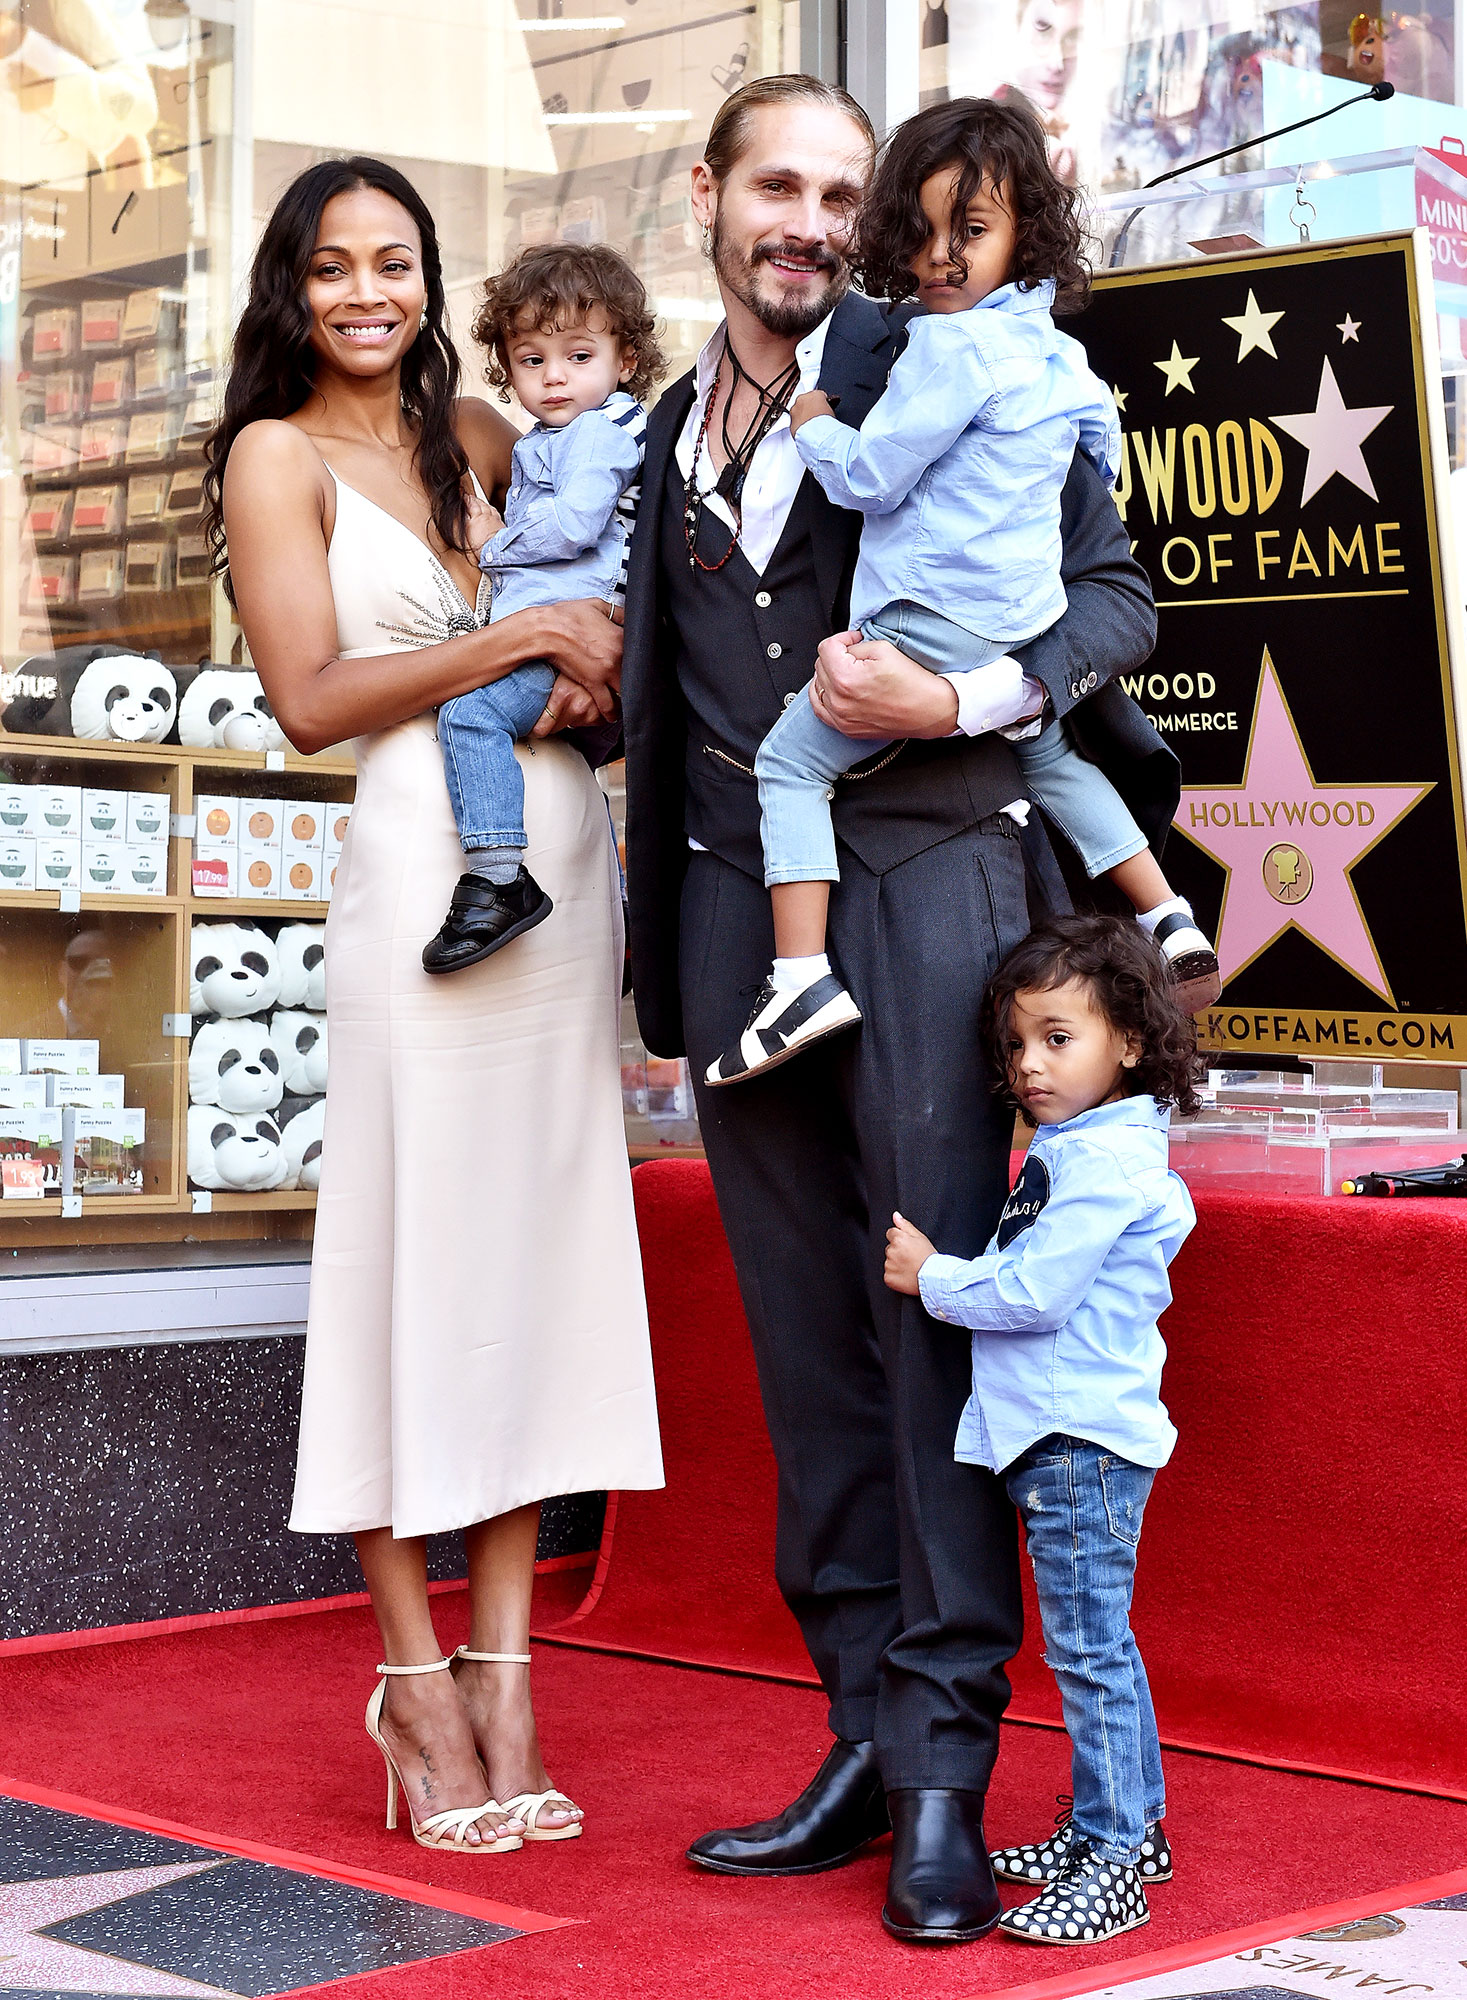 Zoe Saldana and Her Husband Aren't Trying for Baby Girl After Welcoming 3 Boys: 'The Answer Is No' - Actress Zoe Saldana, Marco Perego, Bowie Ezio Perego-Saldana, Cy Aridio Perego-Saldana and Zen Perego-Saldana attend the ceremony honoring Zoe Saldana with star on the Hollywood Walk of Fame on May 3, 2018 in Hollywood, California.